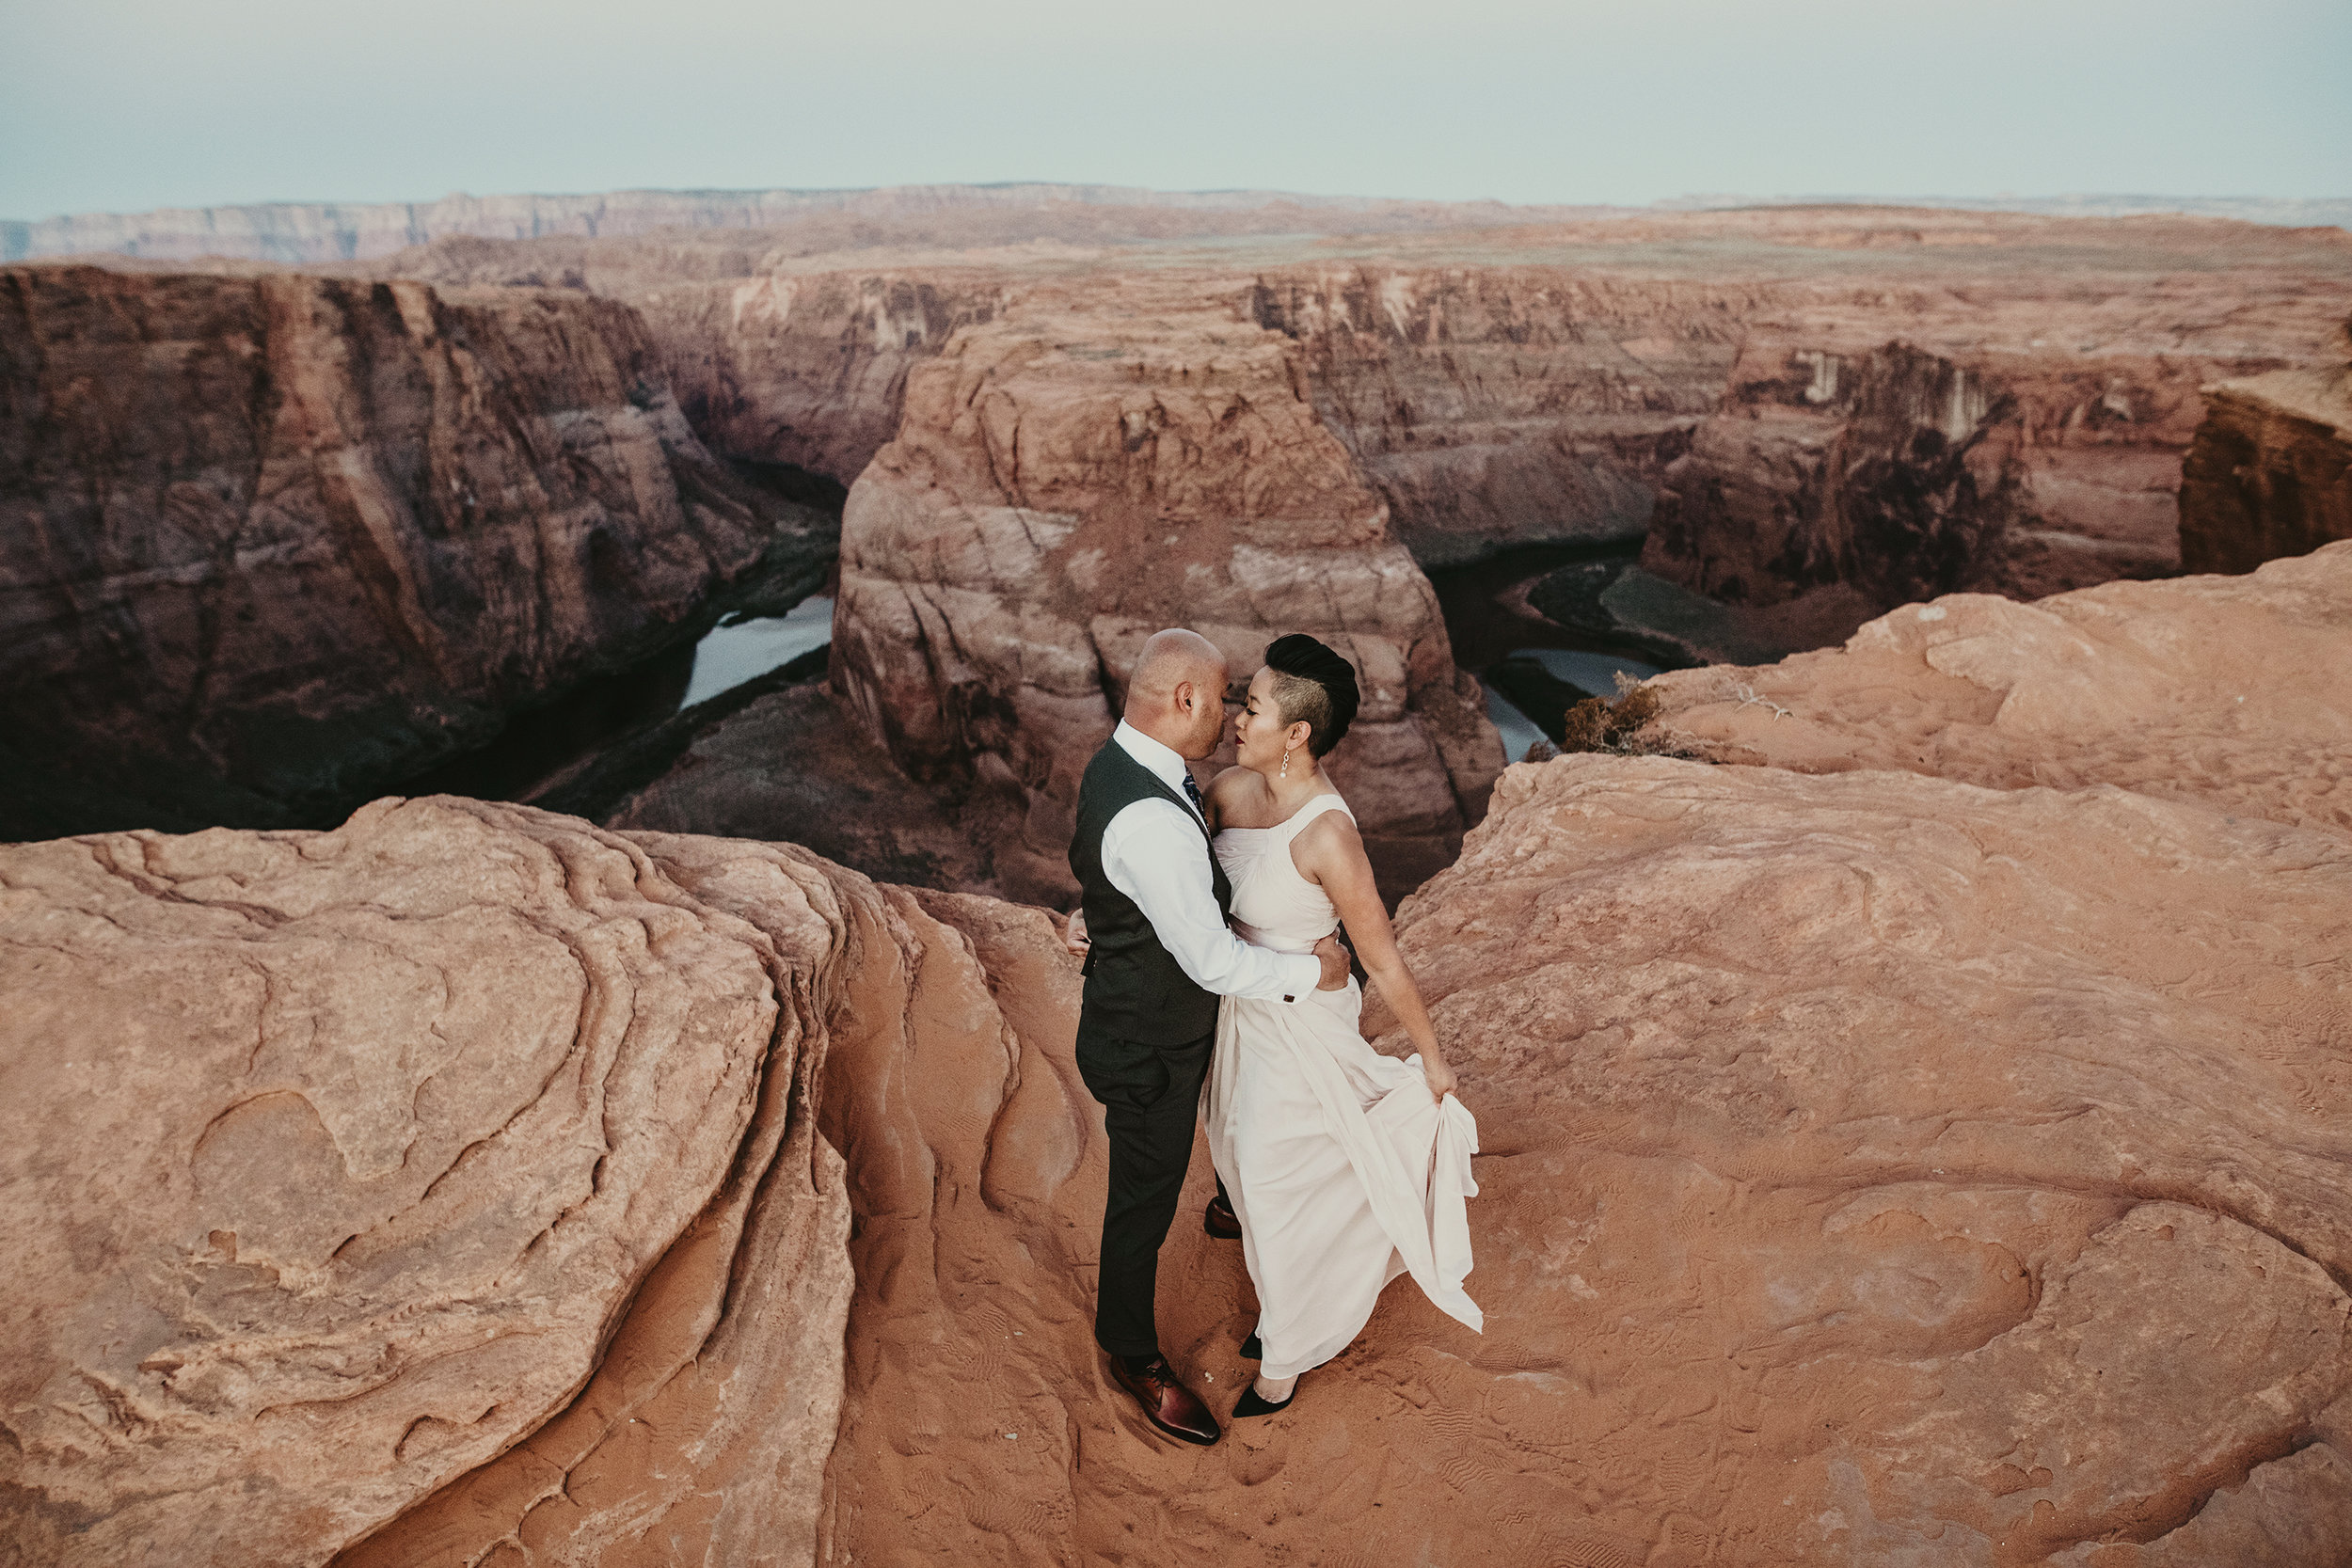 Out-Of-Utah Weddings - If you are getting married outside of my hometown state of Utah, don't for a second think I'm not available at a reasonable price to cover your wedding for you. I charge the cost of travel and lodging + $1800. I love to help you find cheap flight tickets so that it's affordable for you.